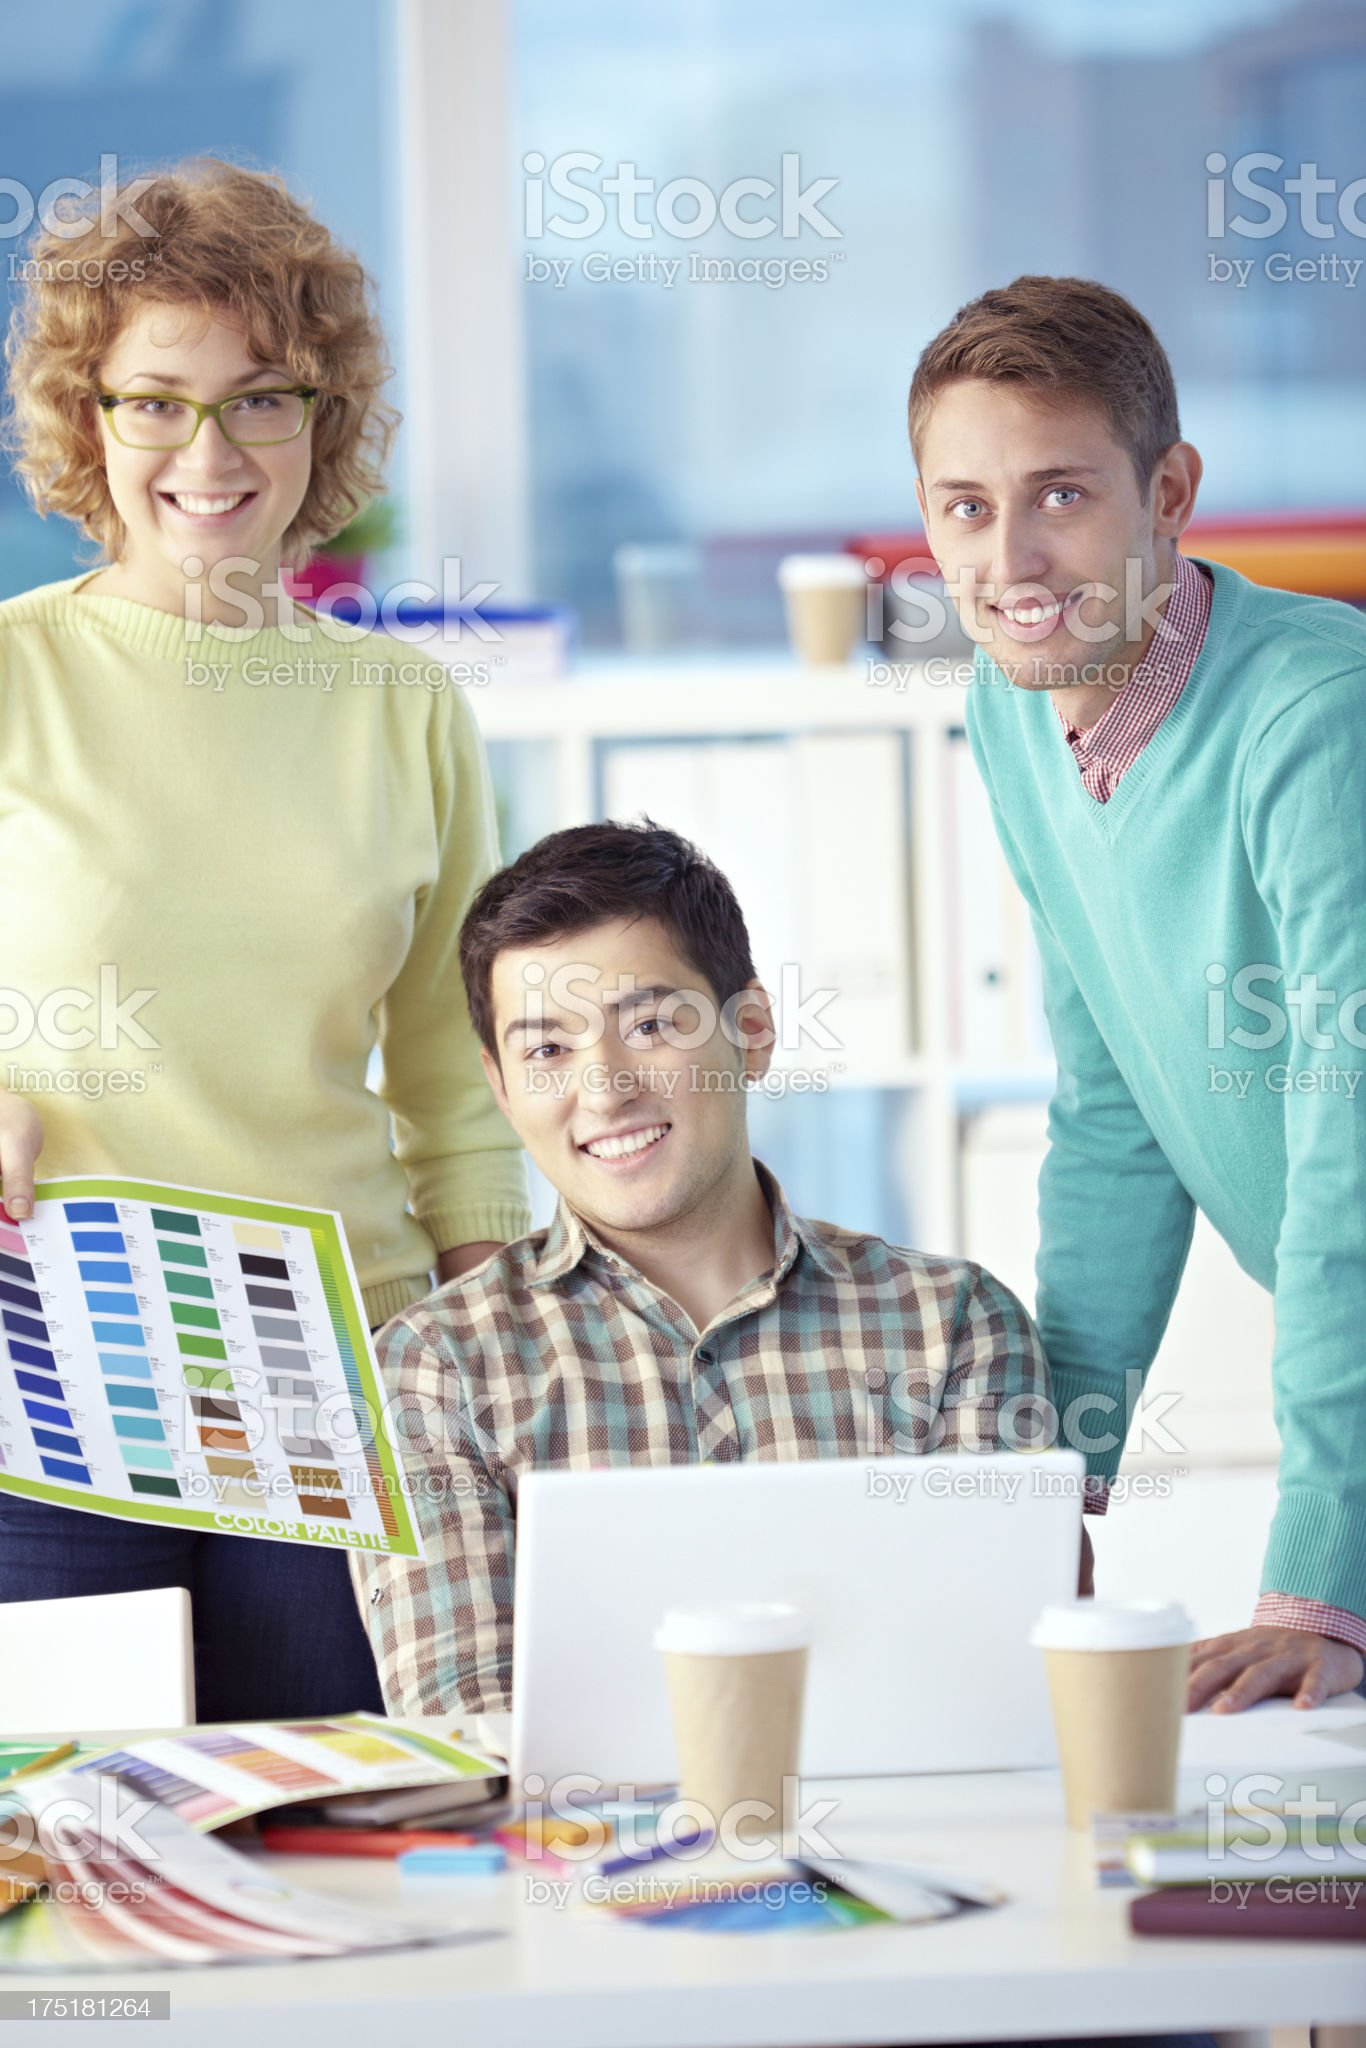 Casual business people royalty-free stock photo